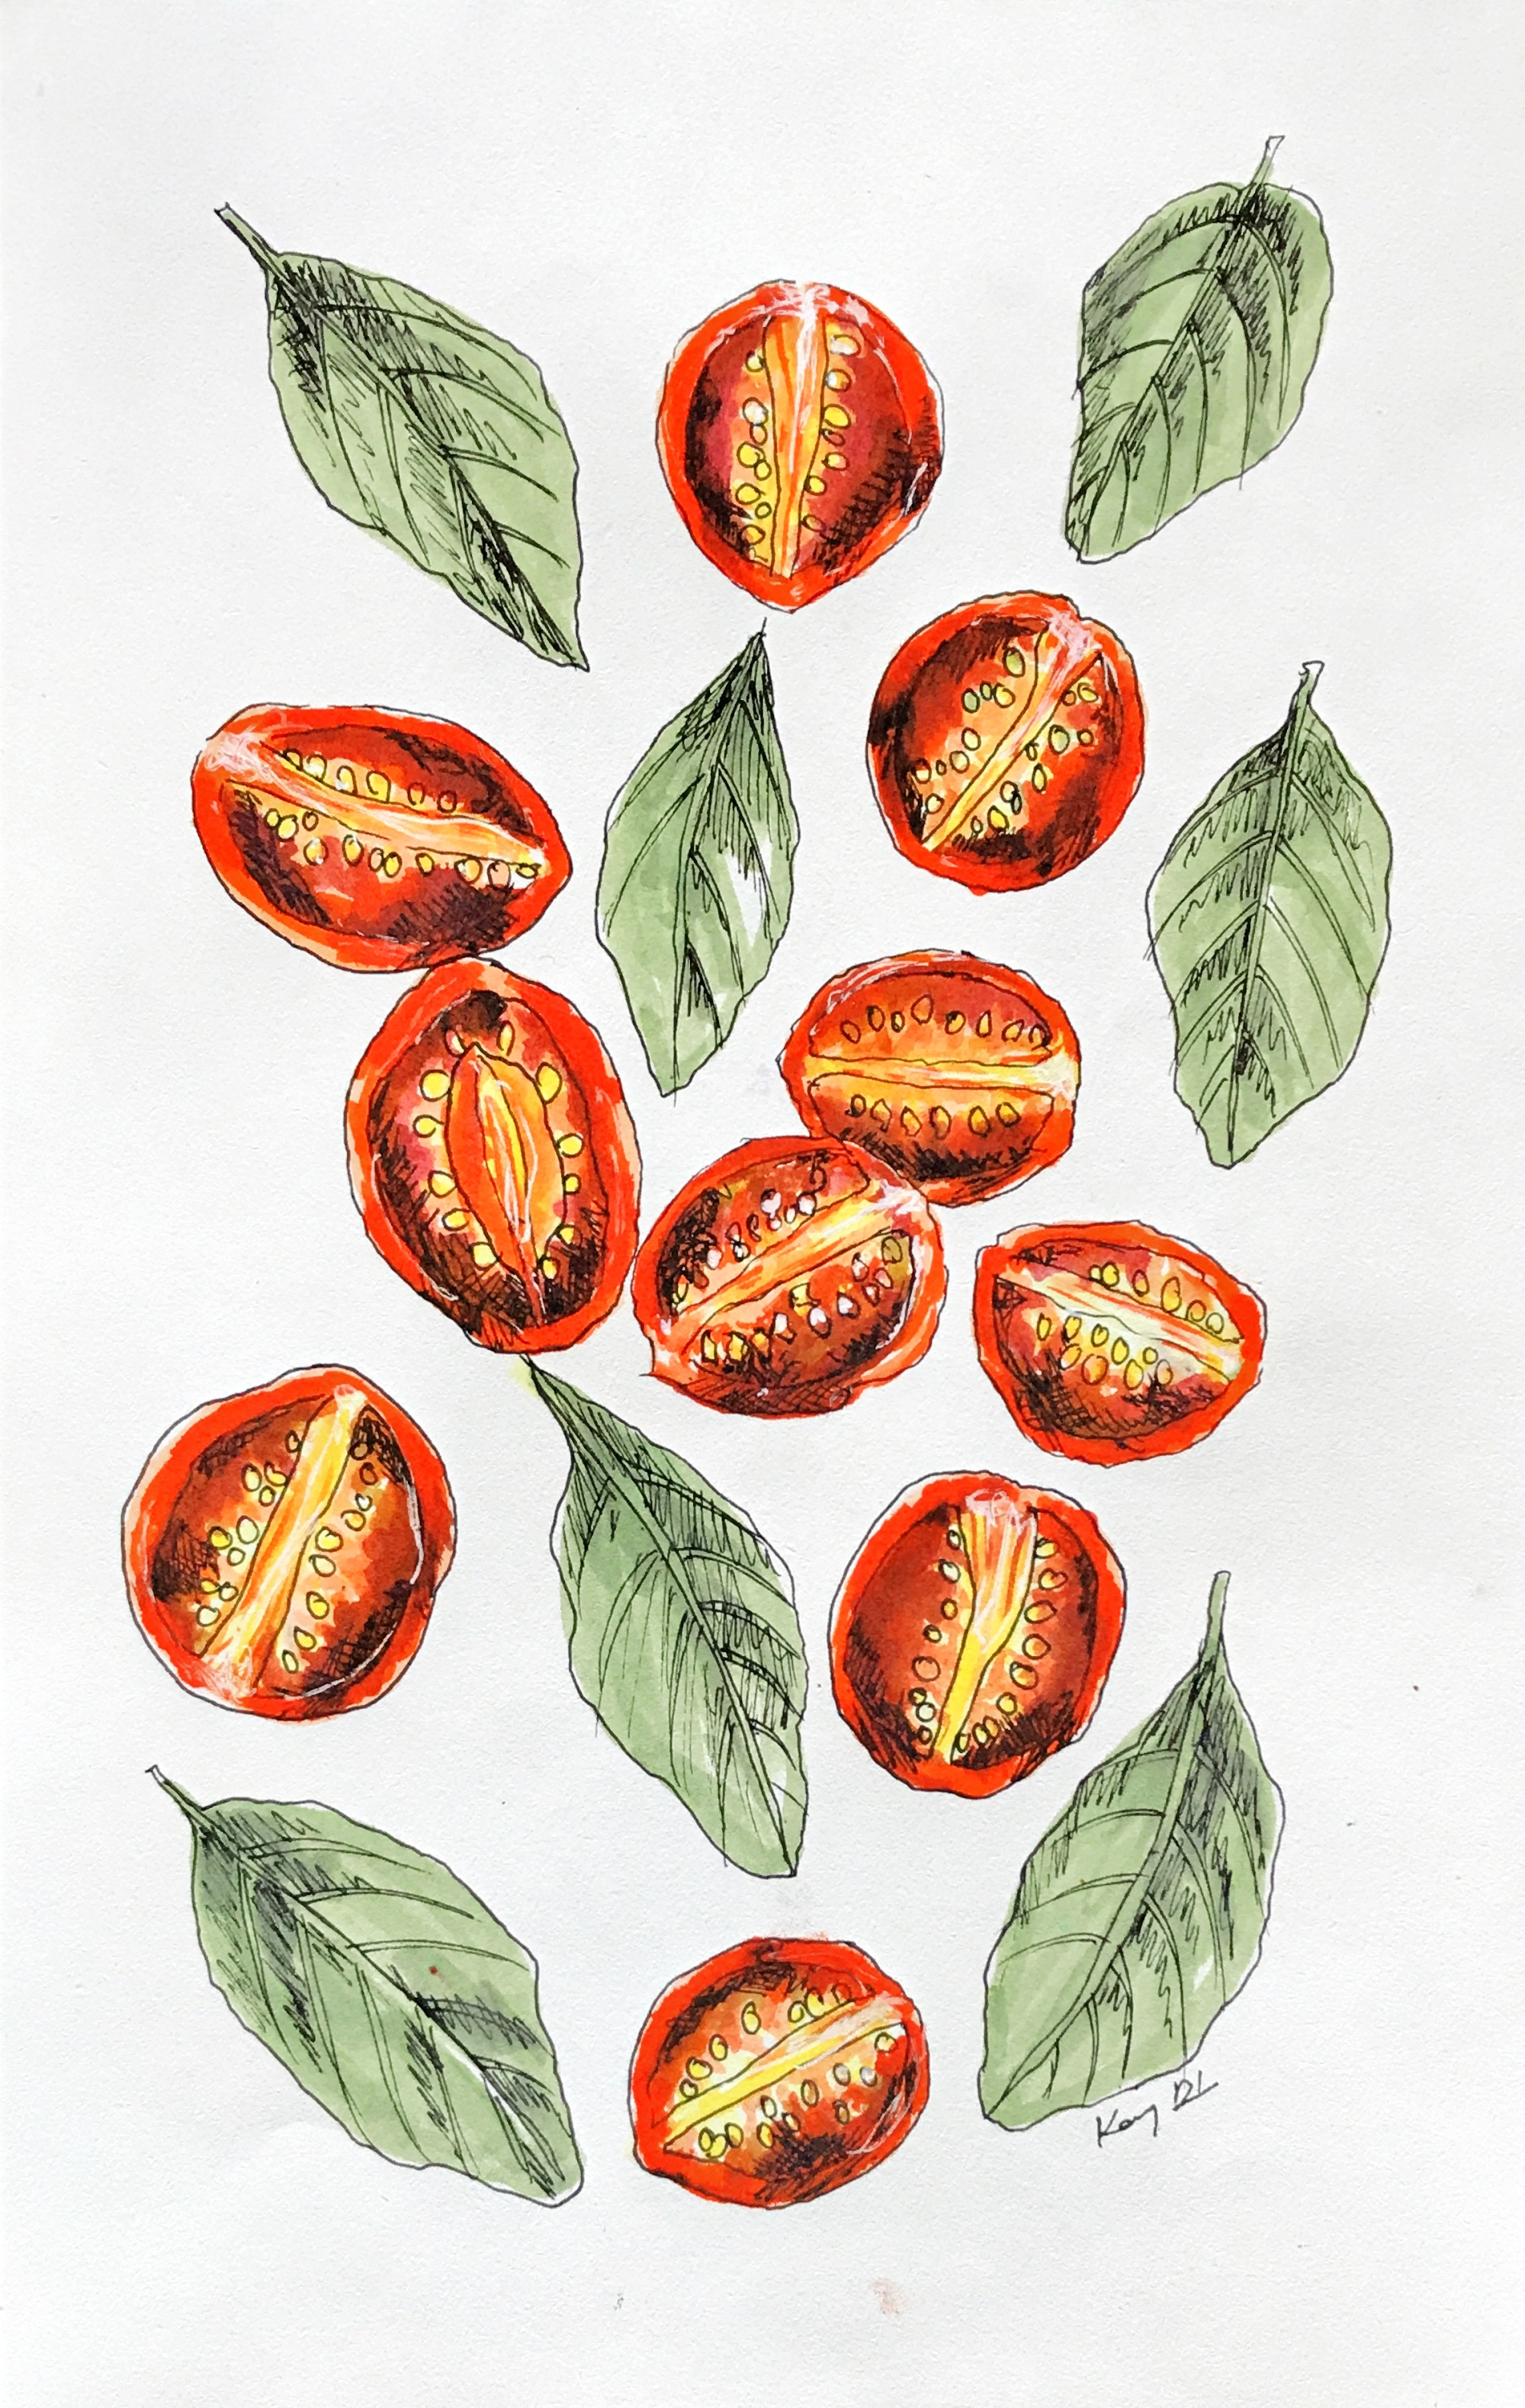 Roasted tomatoes with basil leaves